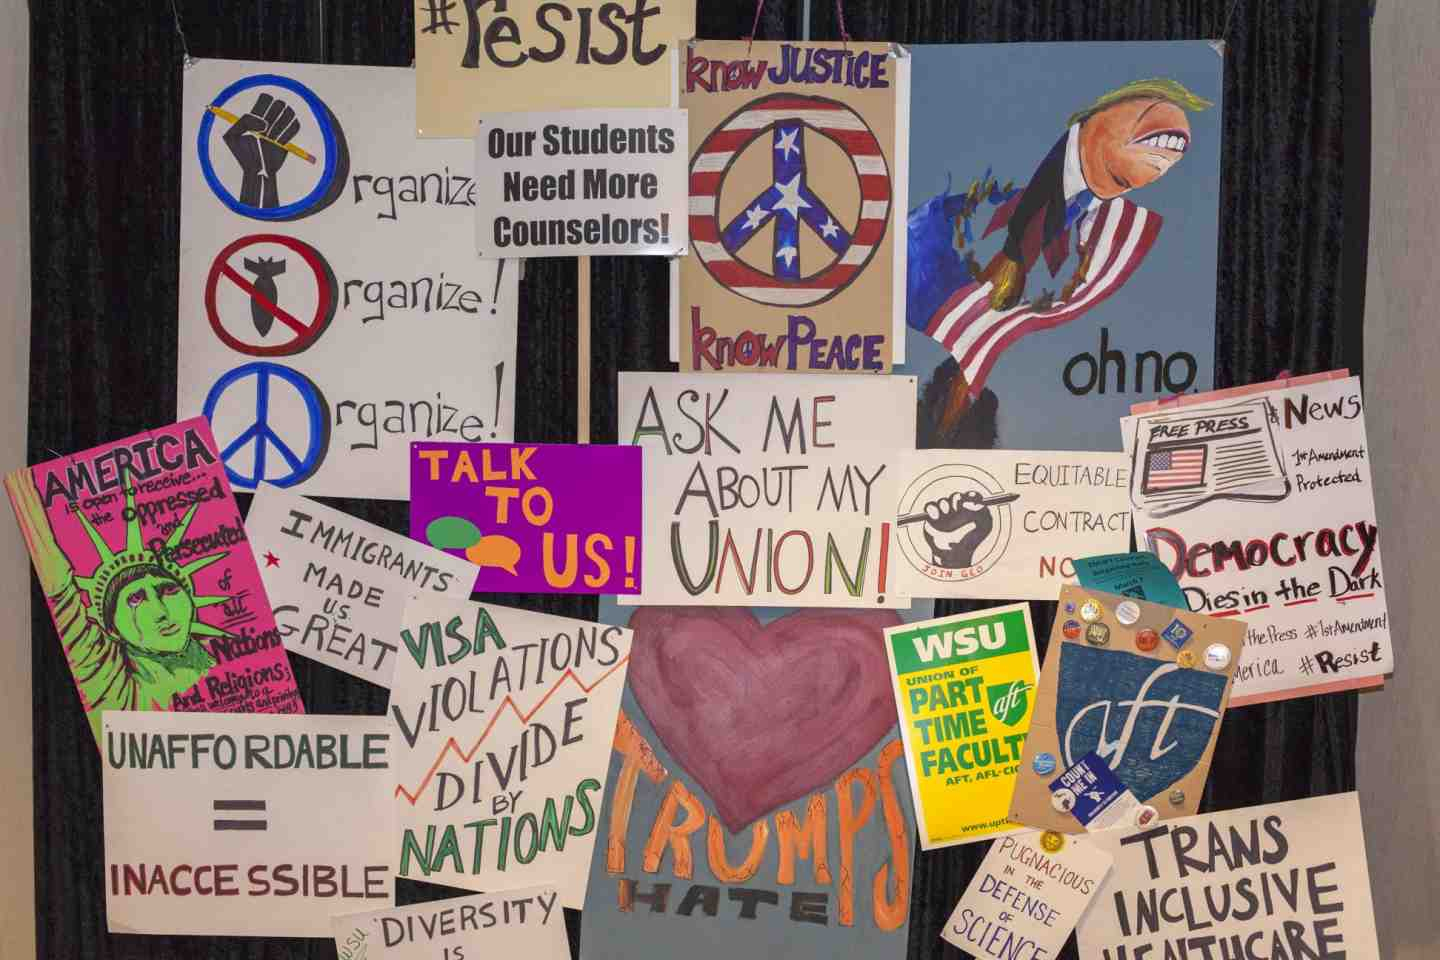 Protest signs on display